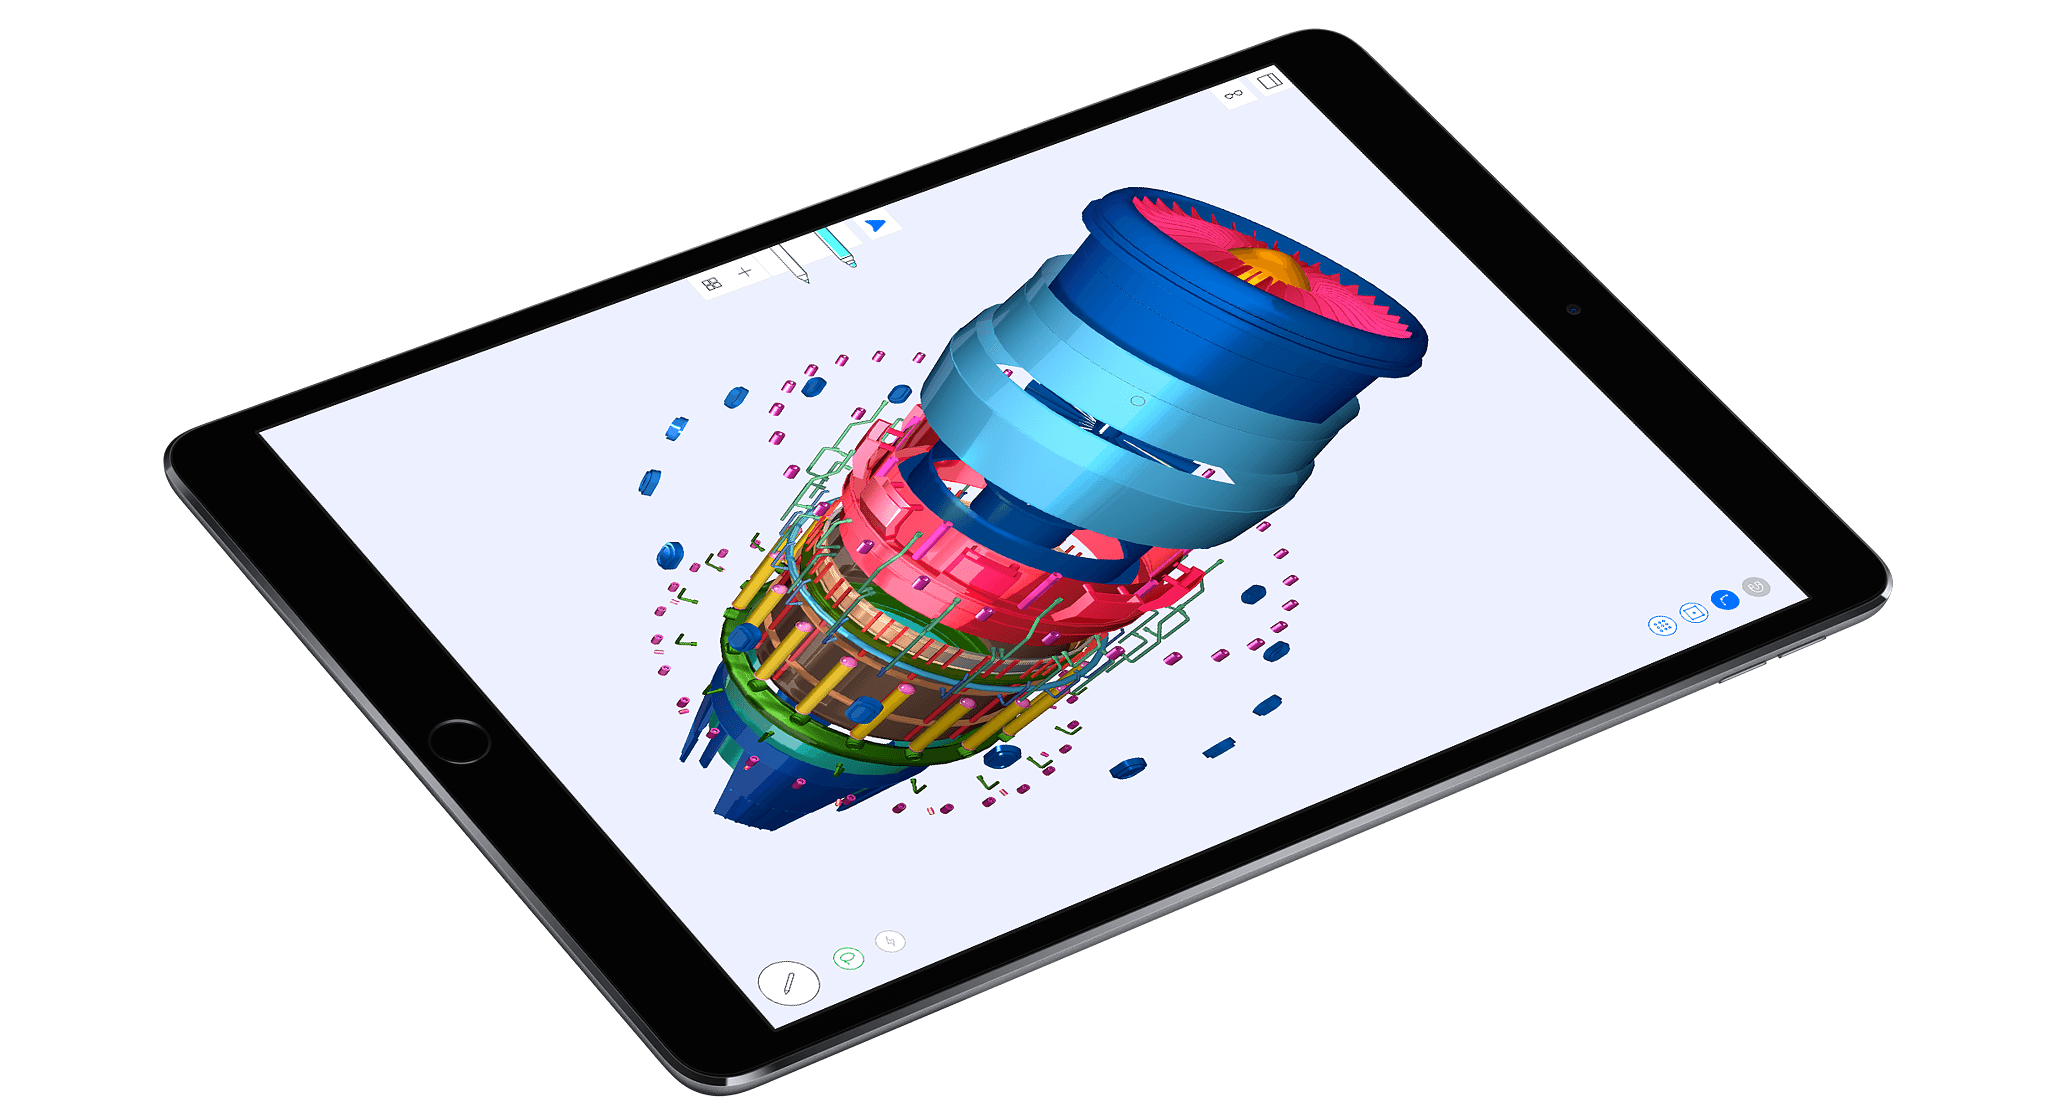 Apple ipad clipart svg library download Apple iPad Pro | The Good Guys svg library download